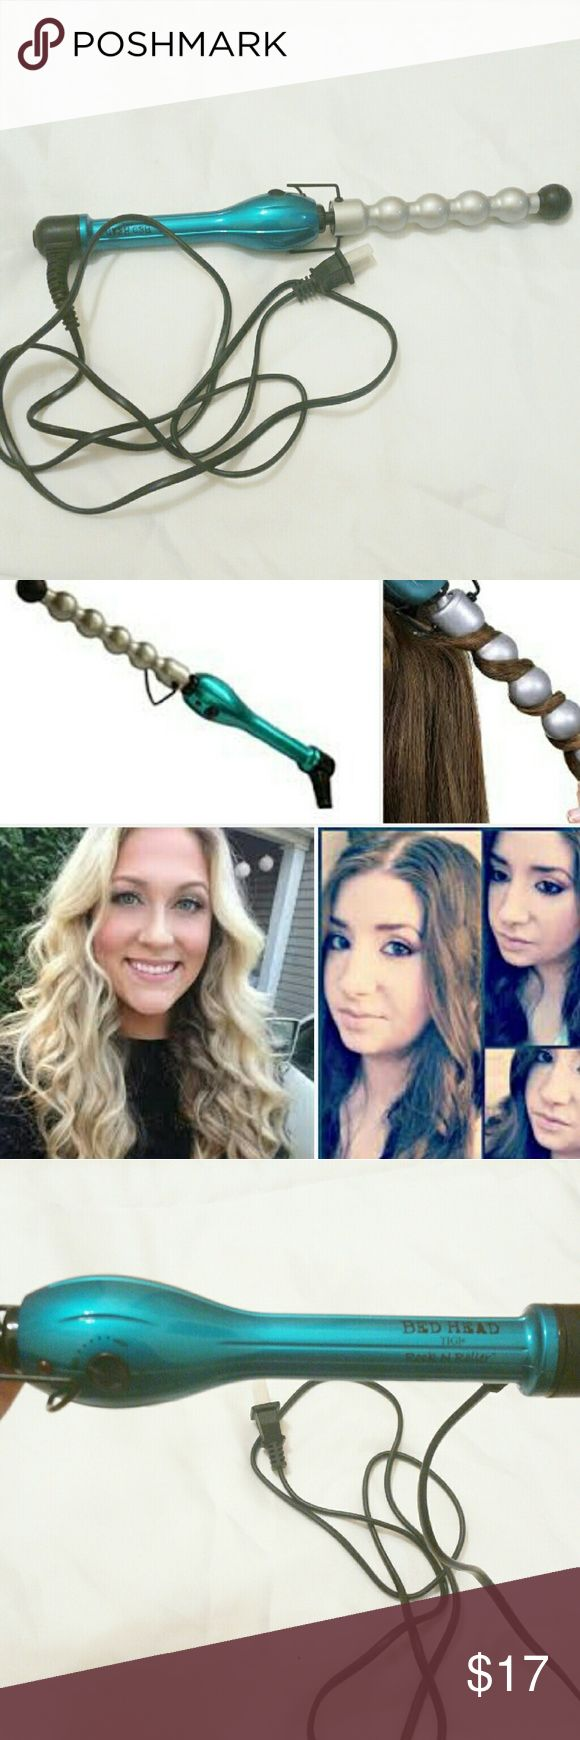 """Blue Bubble Curling Wand New never used without box Used For: Hair Styling, curling For Use On: Hair Hair Type: All Hair Types Barrel Size: 1"""" Features: Multiple Heat Settings, Power Indicator Light, High Heat, Cool Tip Material: Plastic Heating Time: 30 second Number of Heat Settings: 3 BedHead Accessories Hair Accessories"""